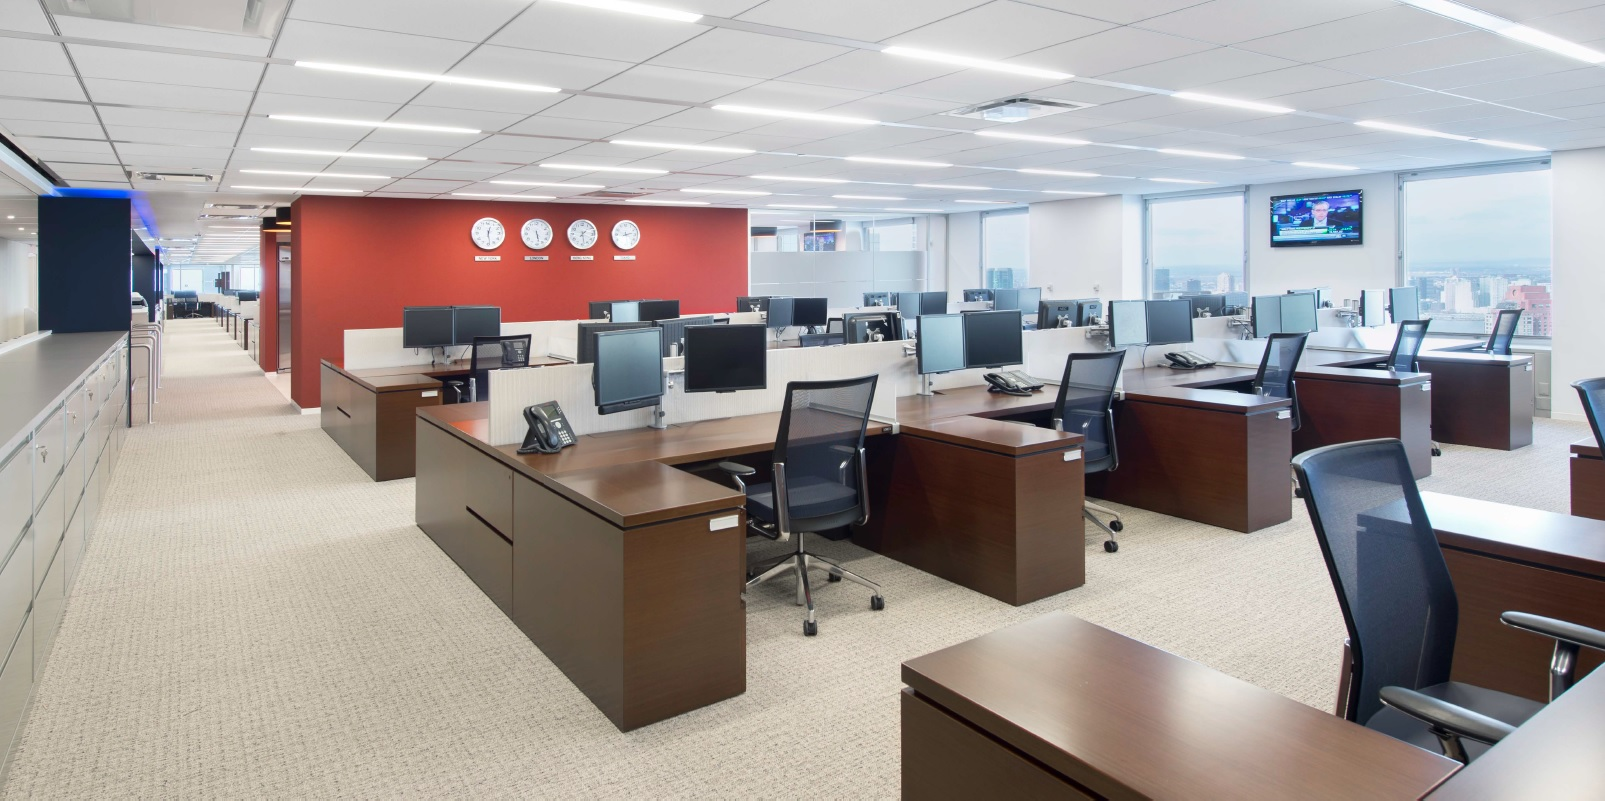 extraordinary investment bank office | Innovant to Display World-Beating Products during NeoCon ...